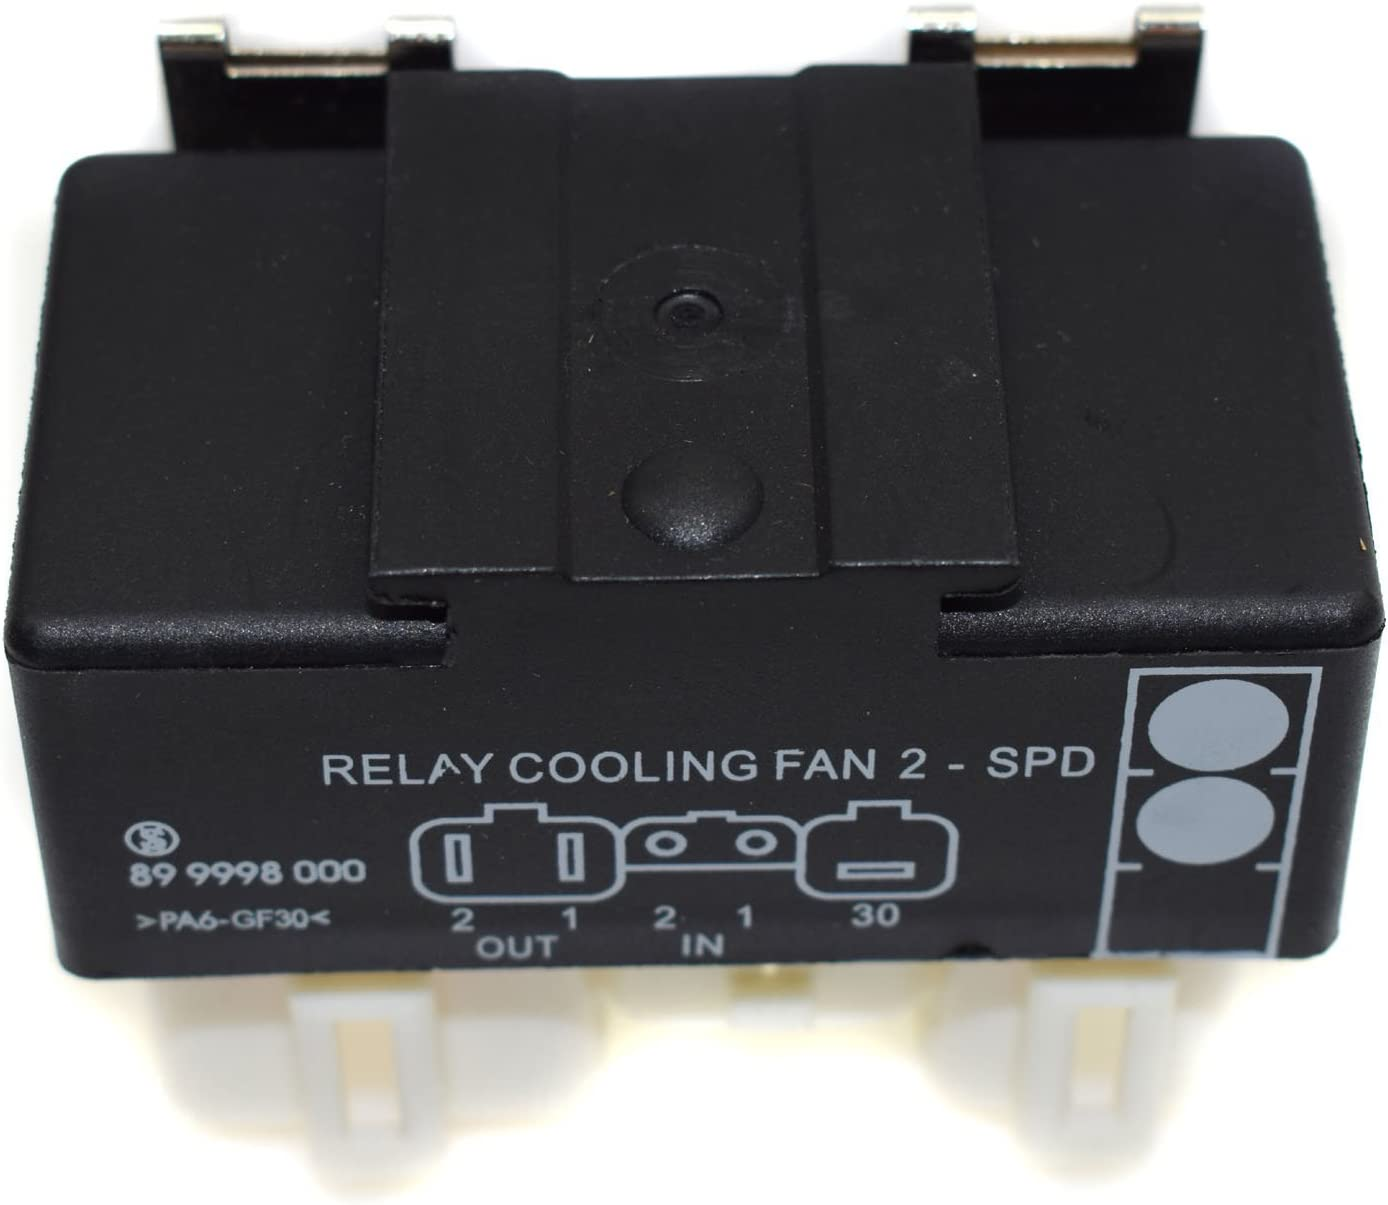 Cooling Fan Control Switch Relay 9442933 9442934 For Volvos 740 850 940 960 C70 S70 S90 V70 1992 1993 1994 1995 1996 1997 1998 1999 2000 2001 2002 2003